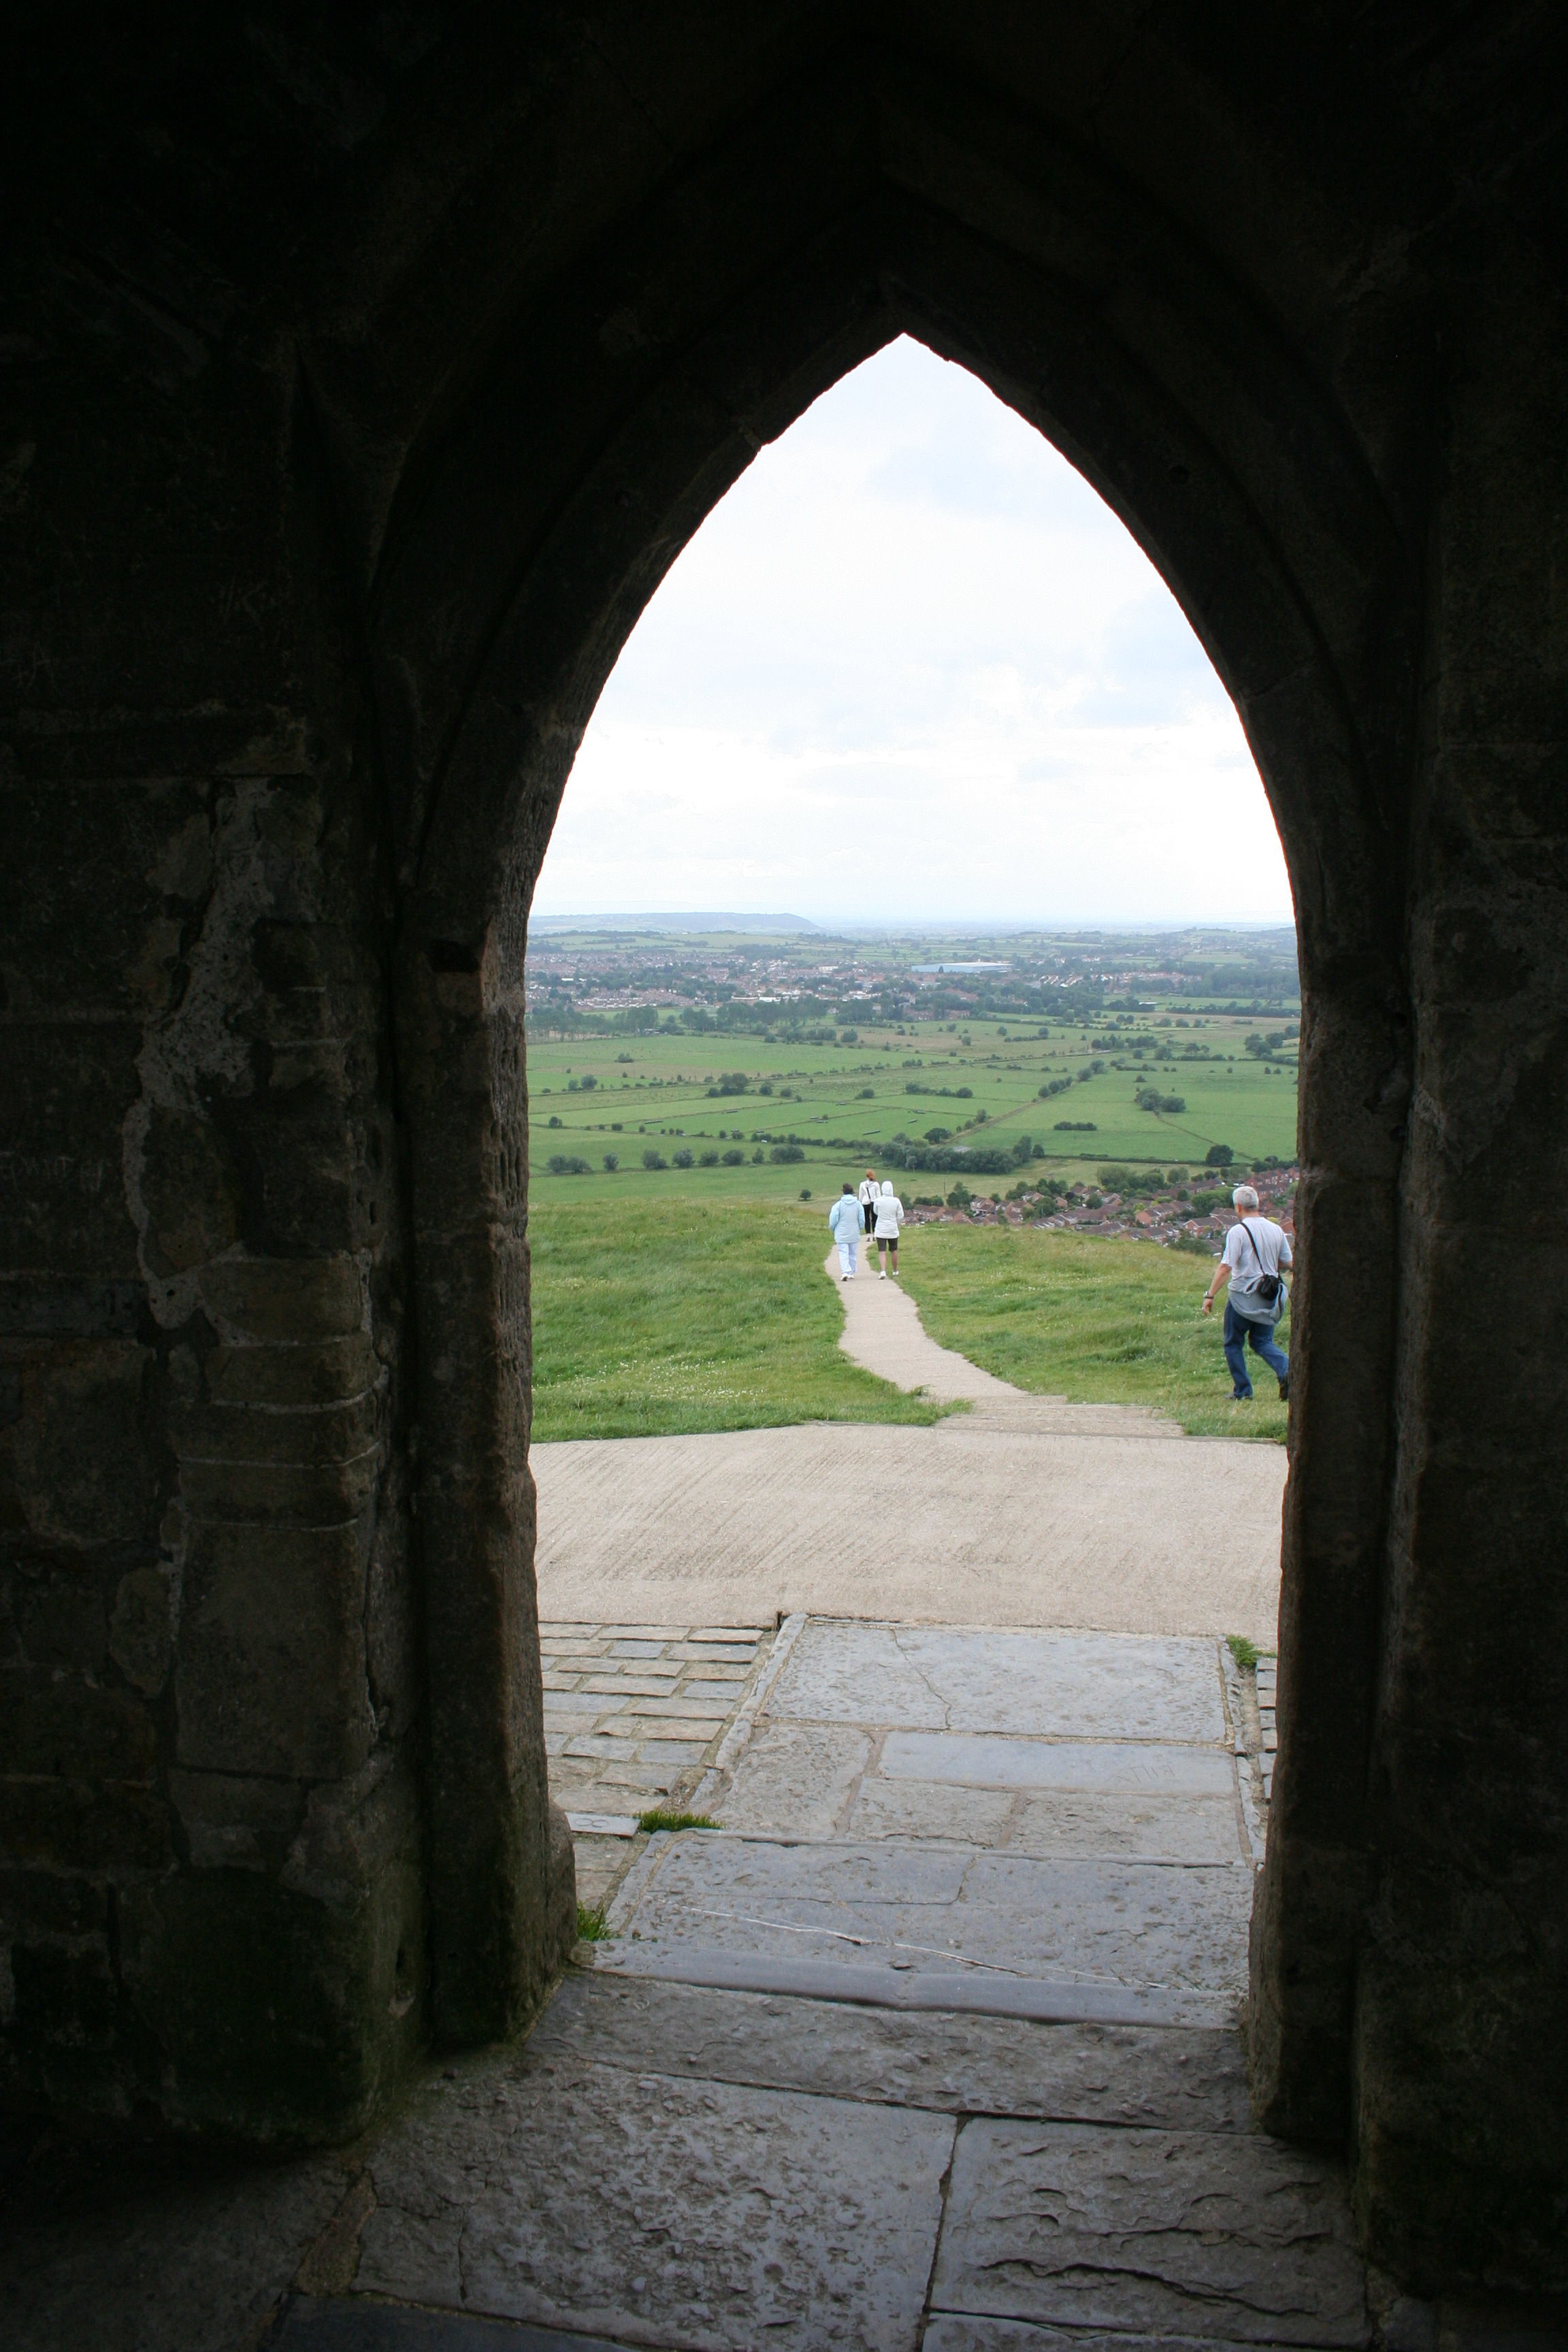 Glastonbury Tor Looking Out